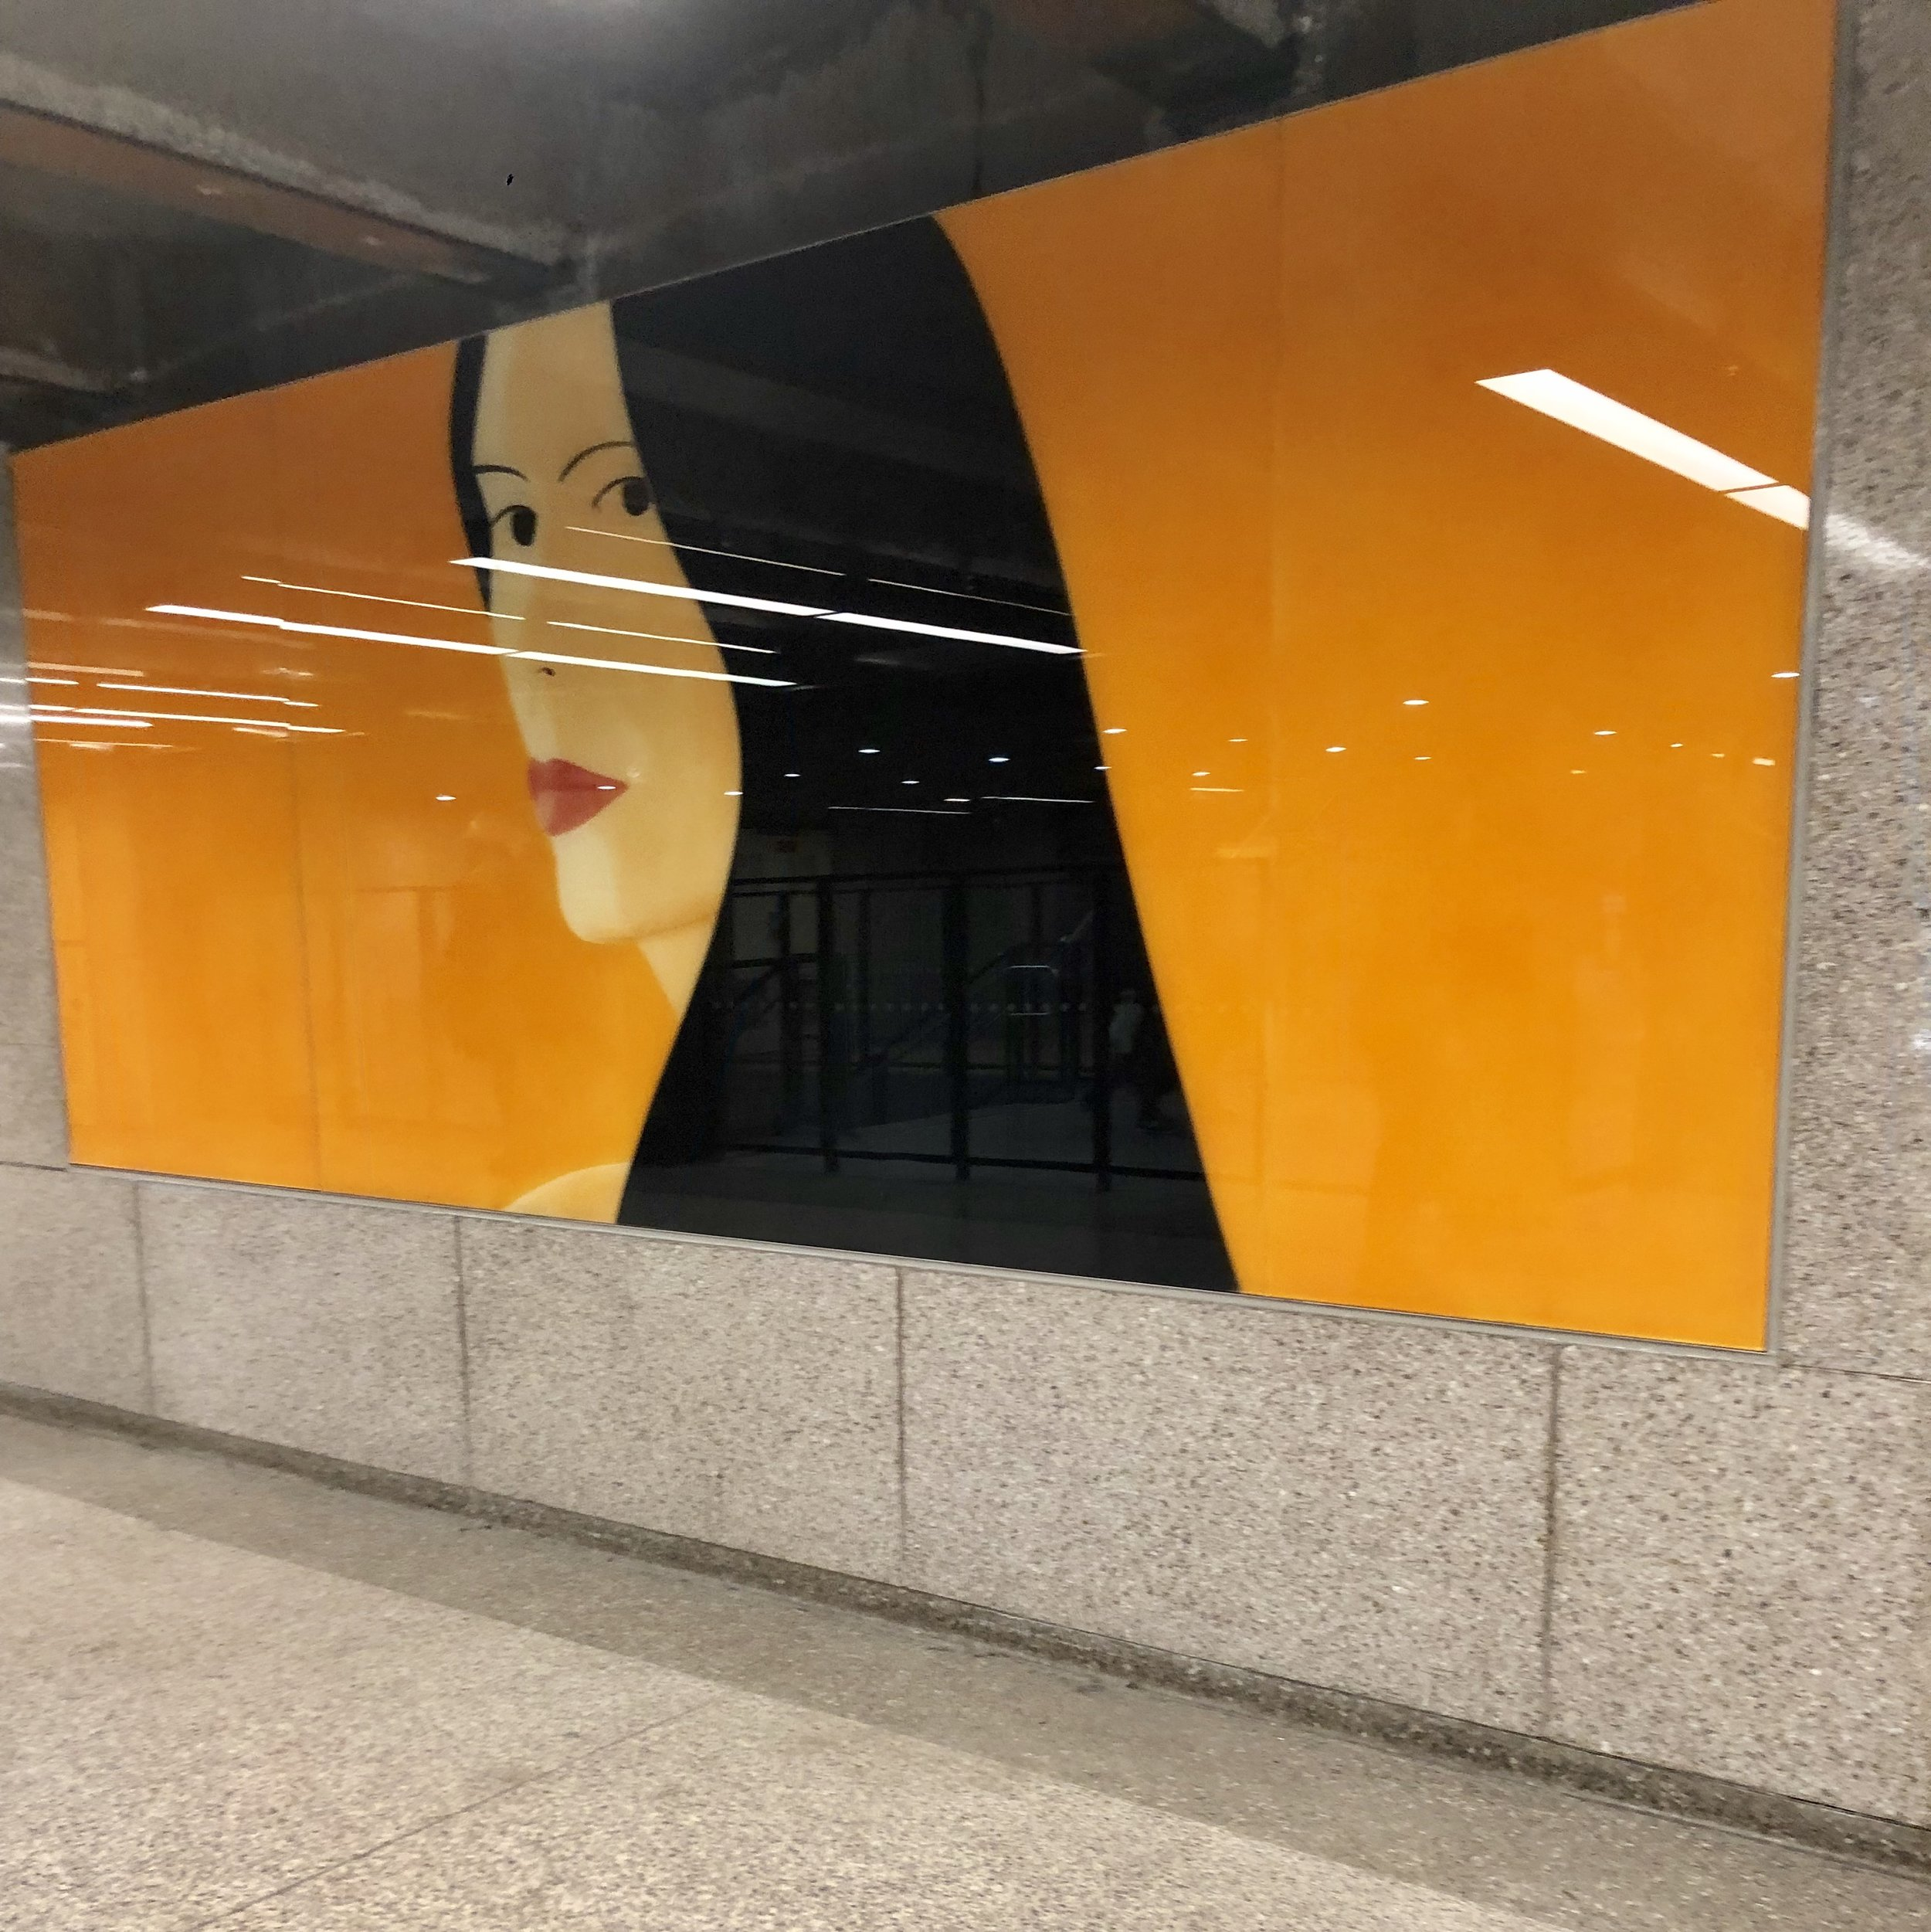 Alex Katz for MTA at the 57th Street F-train station. Photo Cred: YPA NYC